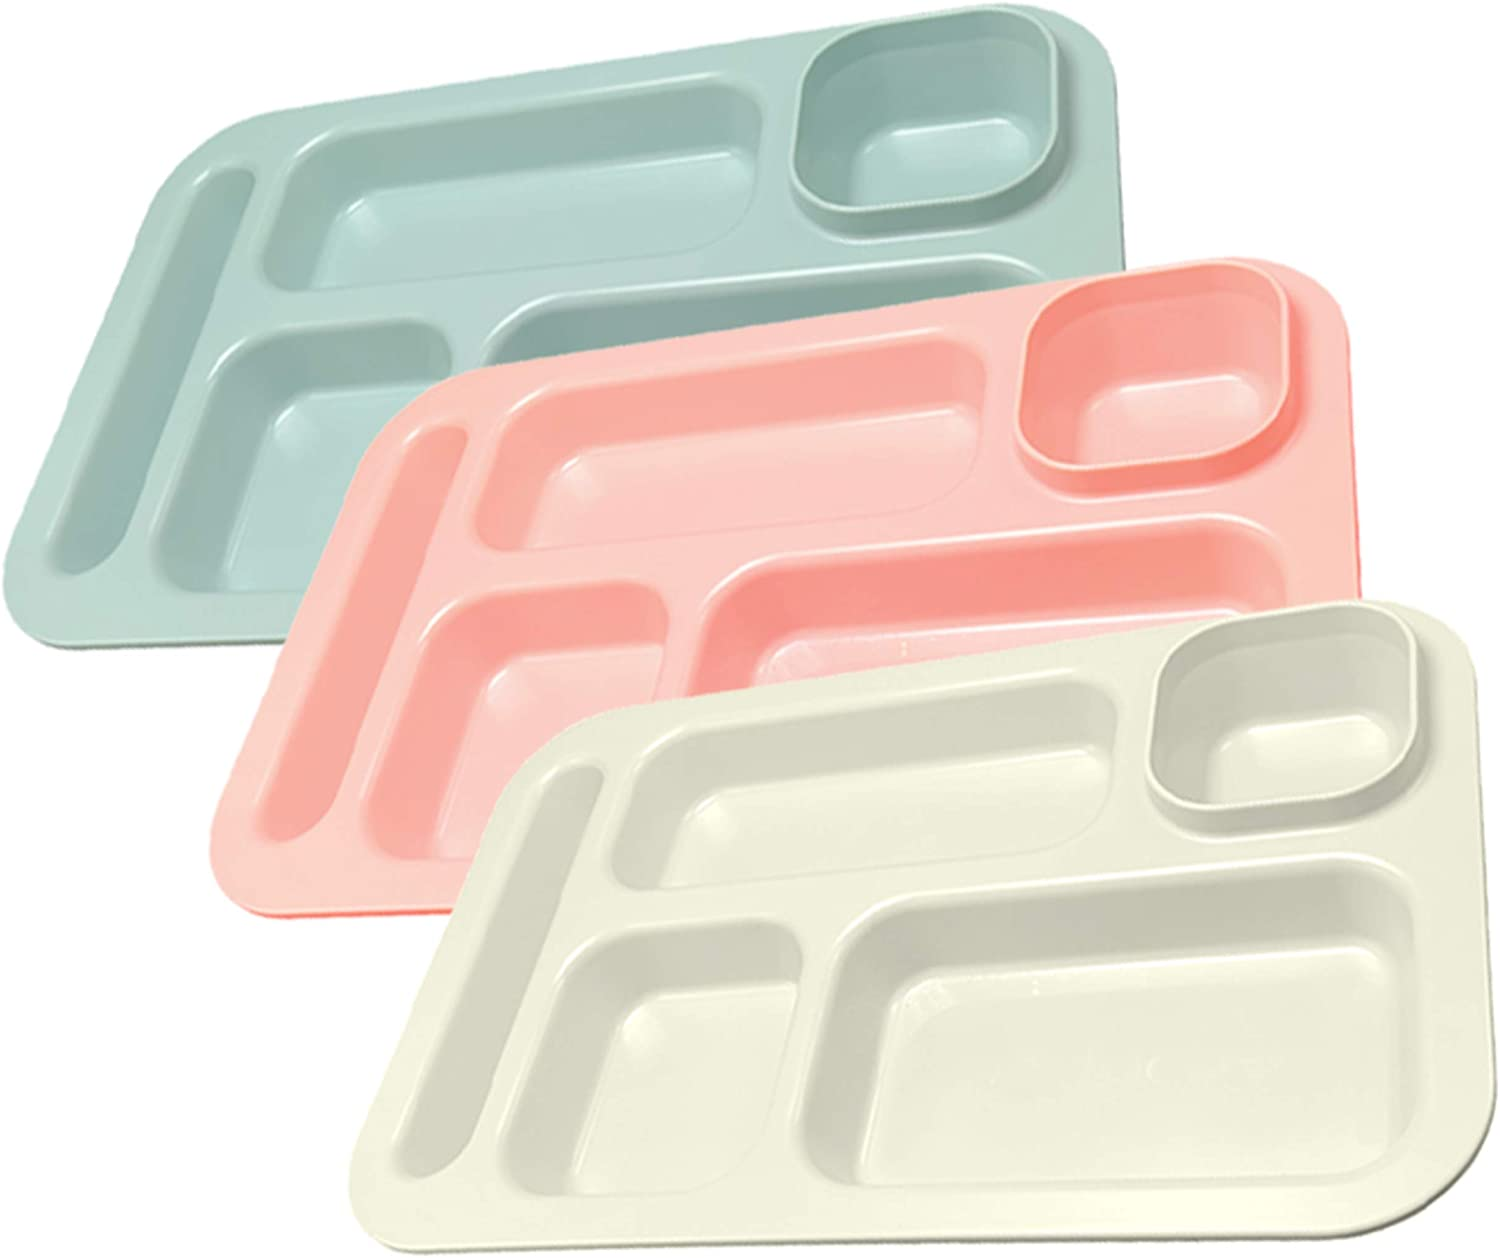 Happy Starla - Made in USA -Large Plastic Divided Plates for Adults, School Lunch Trays for Kids Fast Food Trays Cafeteria Trays with Compartments Strong Durable! 15.25